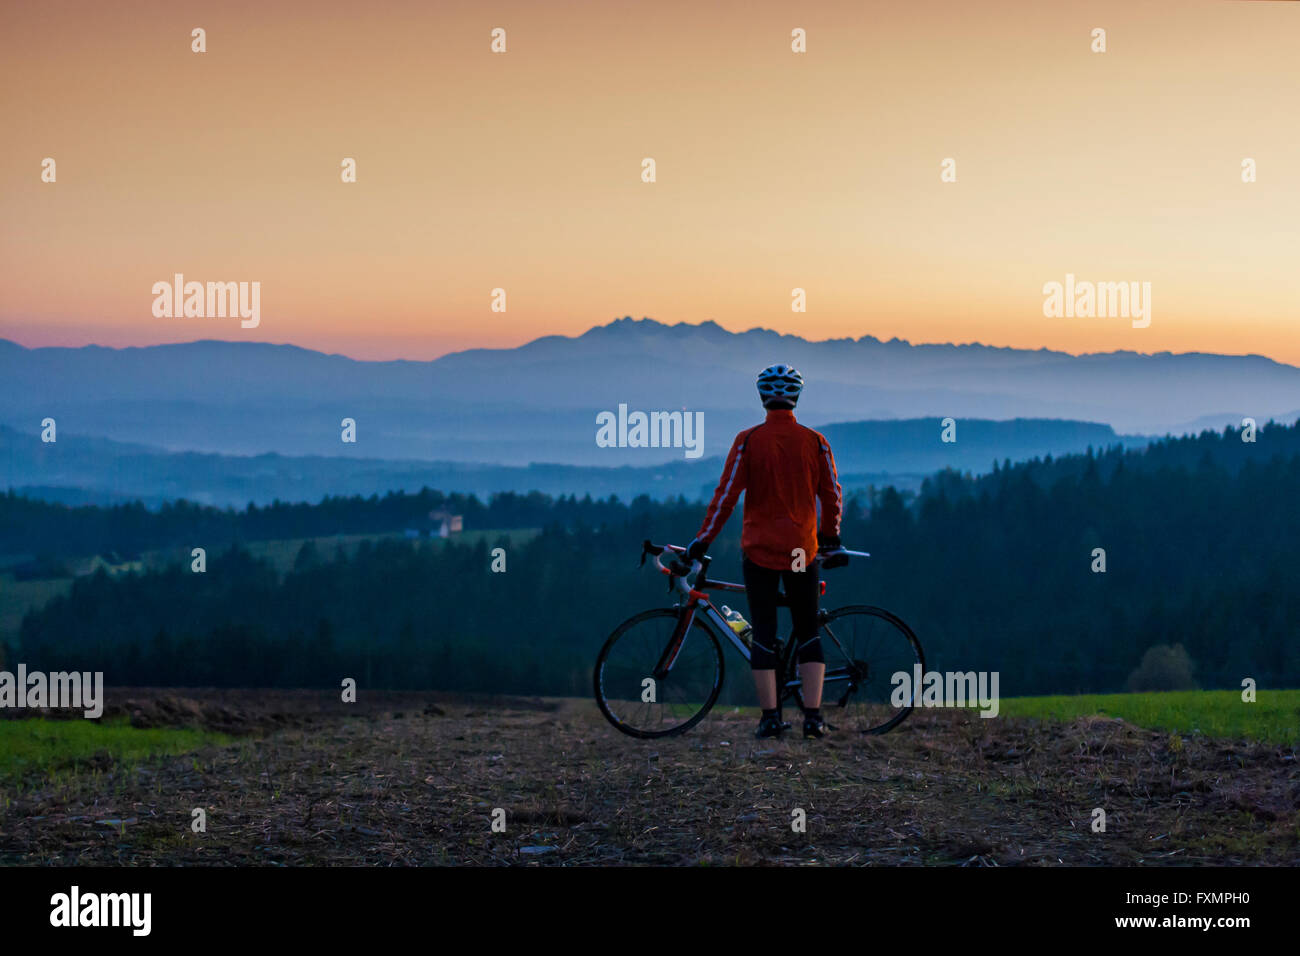 Cyclist looking at the sunset over the Tatra mountains in Poland - Stock Image